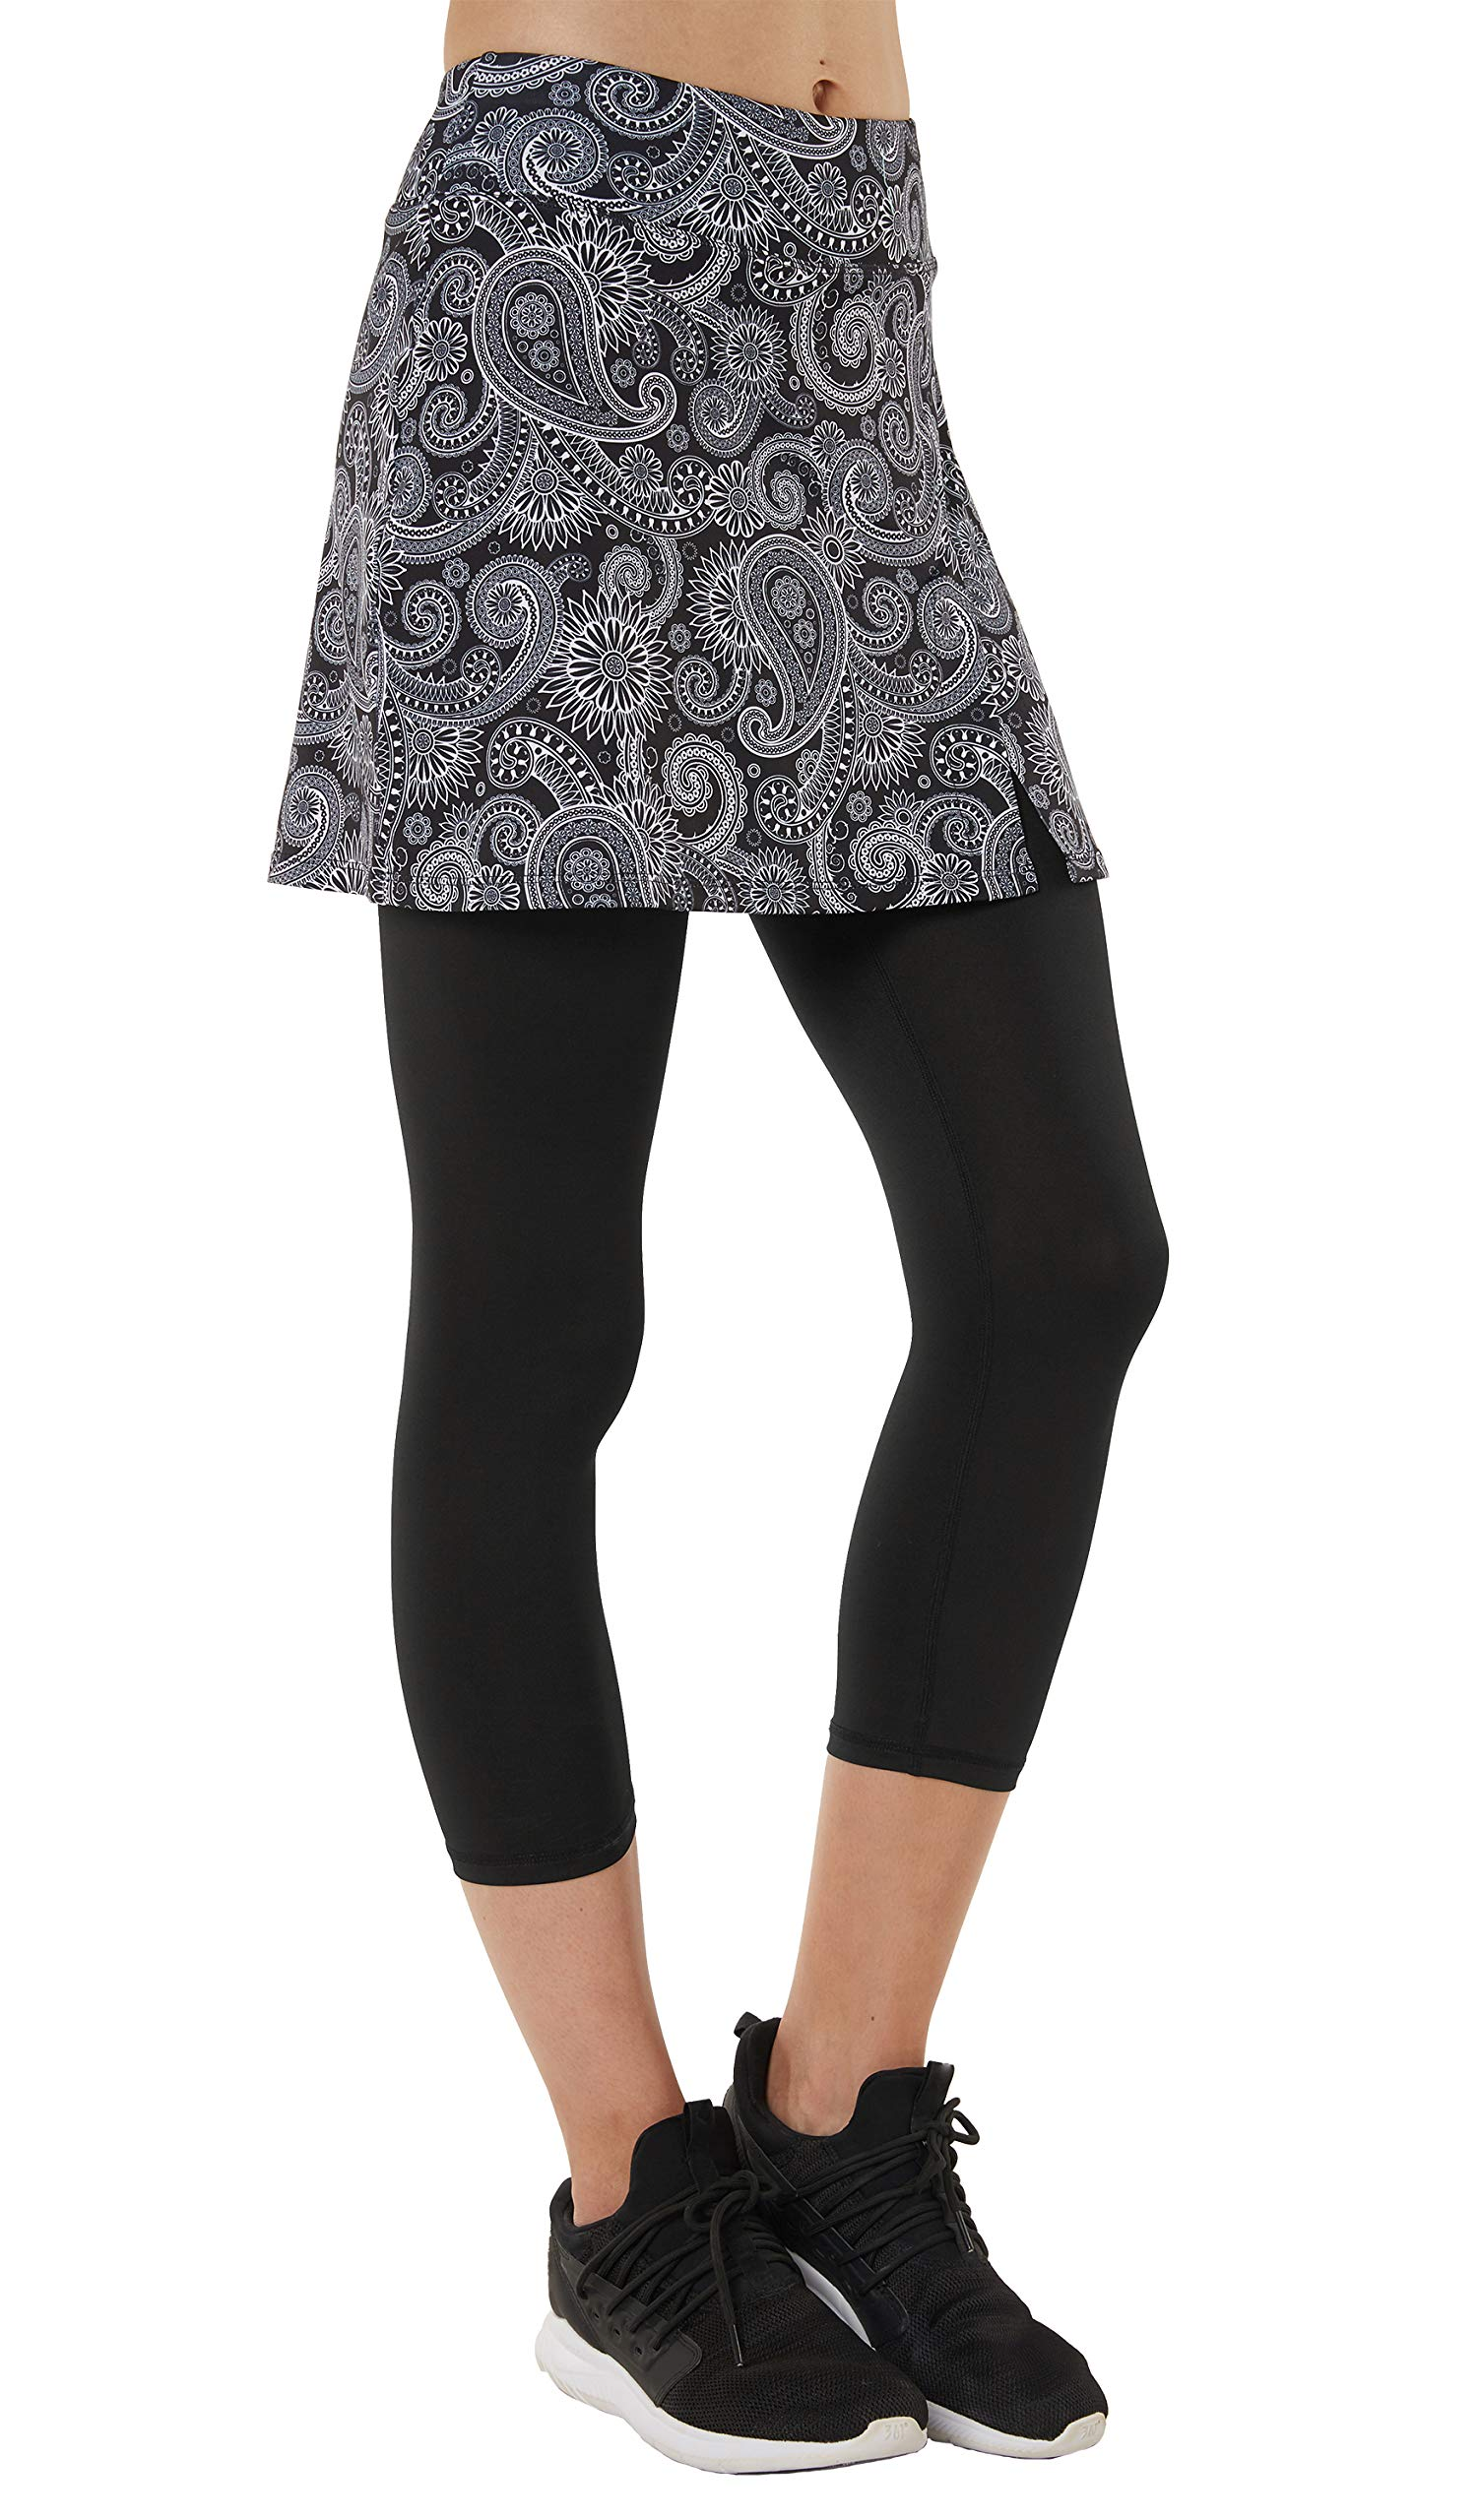 slimour Women Capri Leggings with Skirt Attached Capri Pants Skirted Leggings Workout Paisley XS by slimour